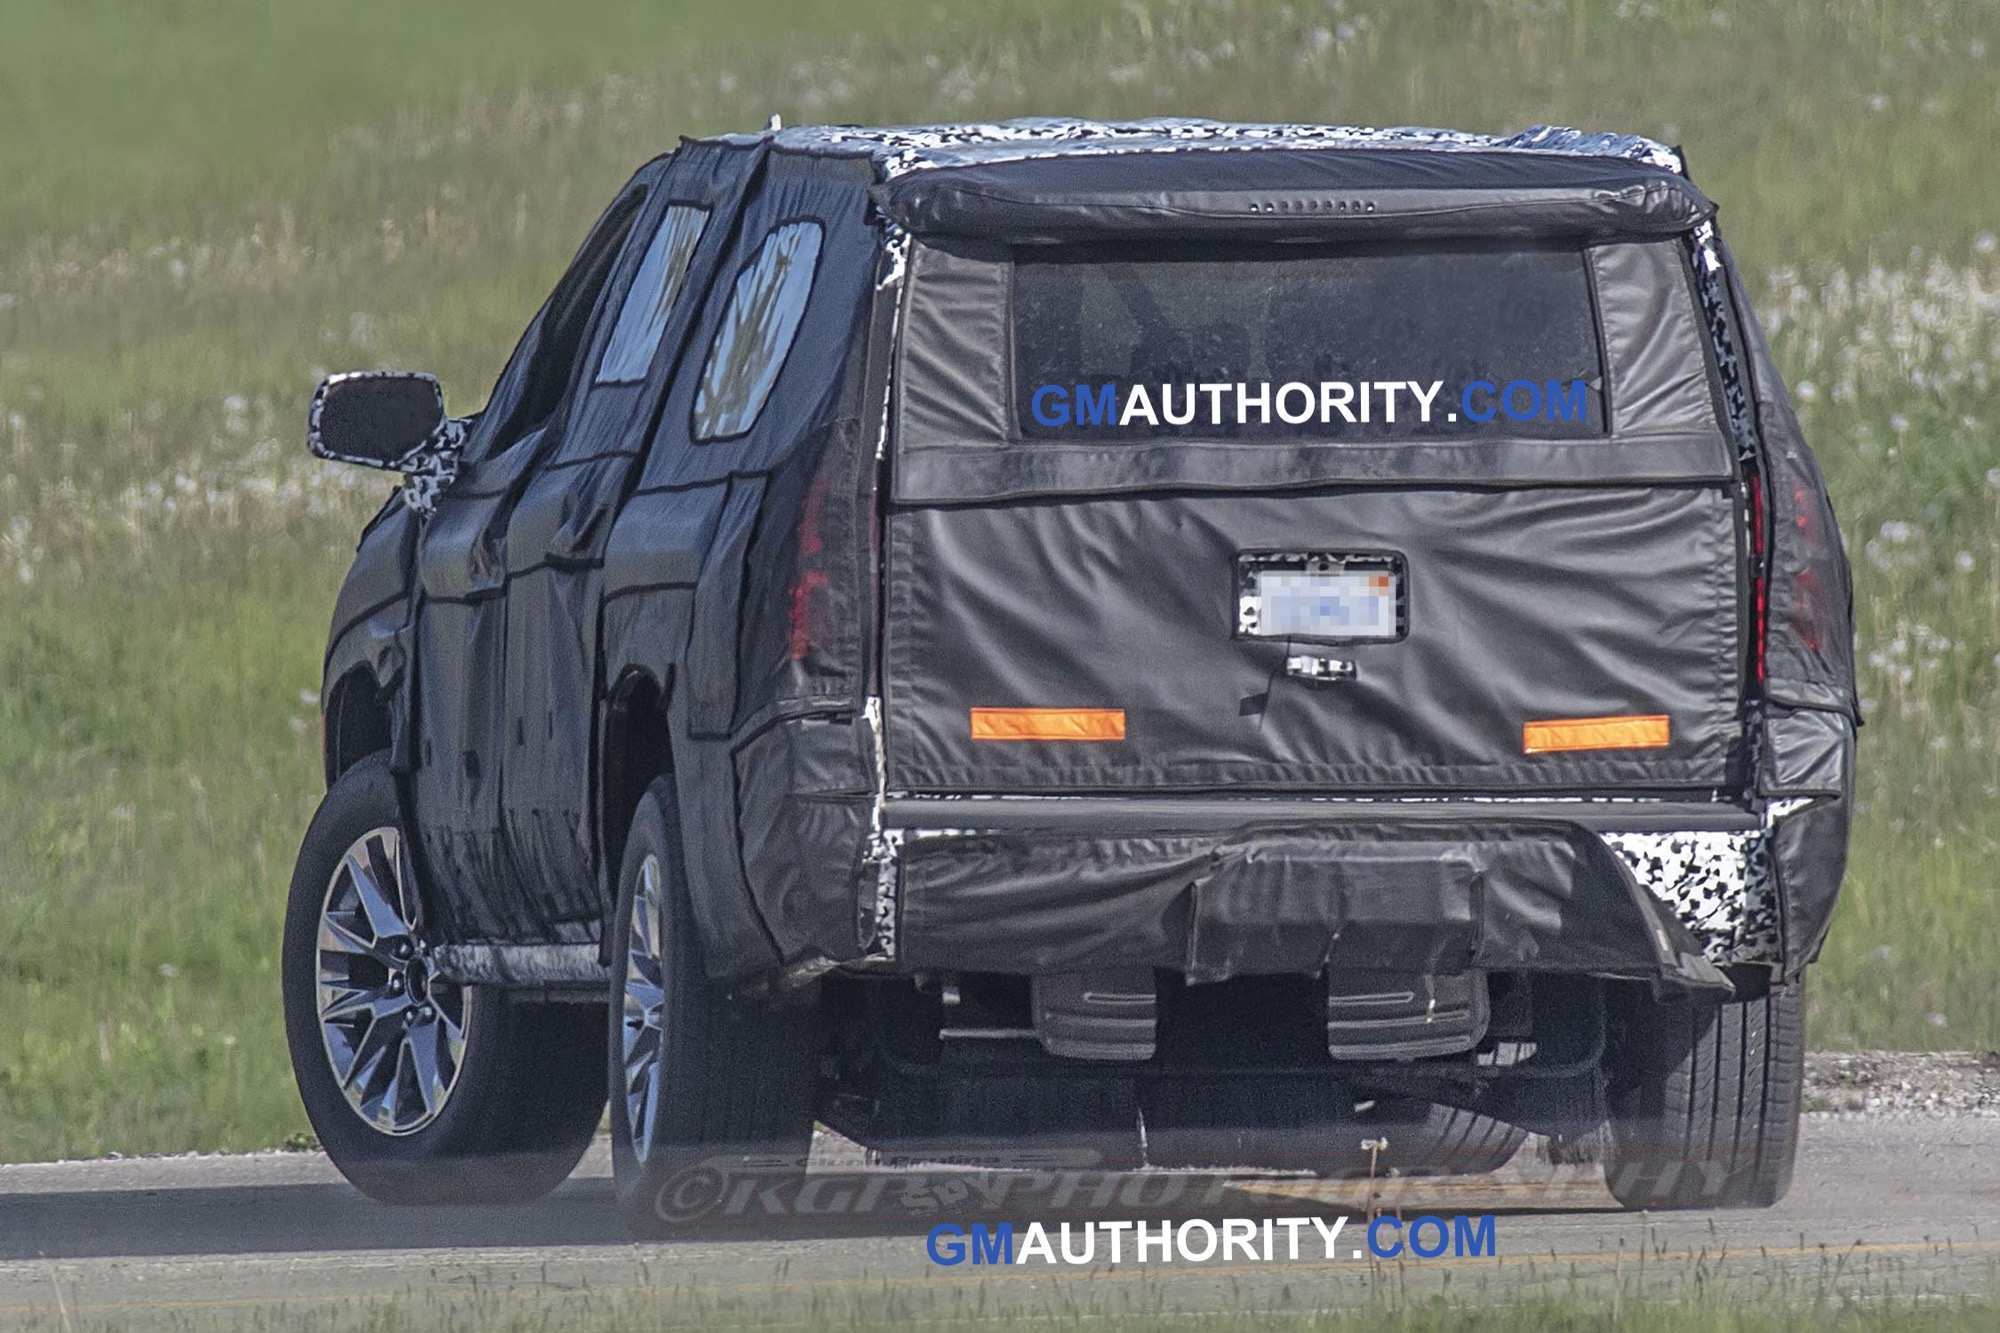 48 Concept of 2020 Chevy Suburban Specs and Review for 2020 Chevy Suburban